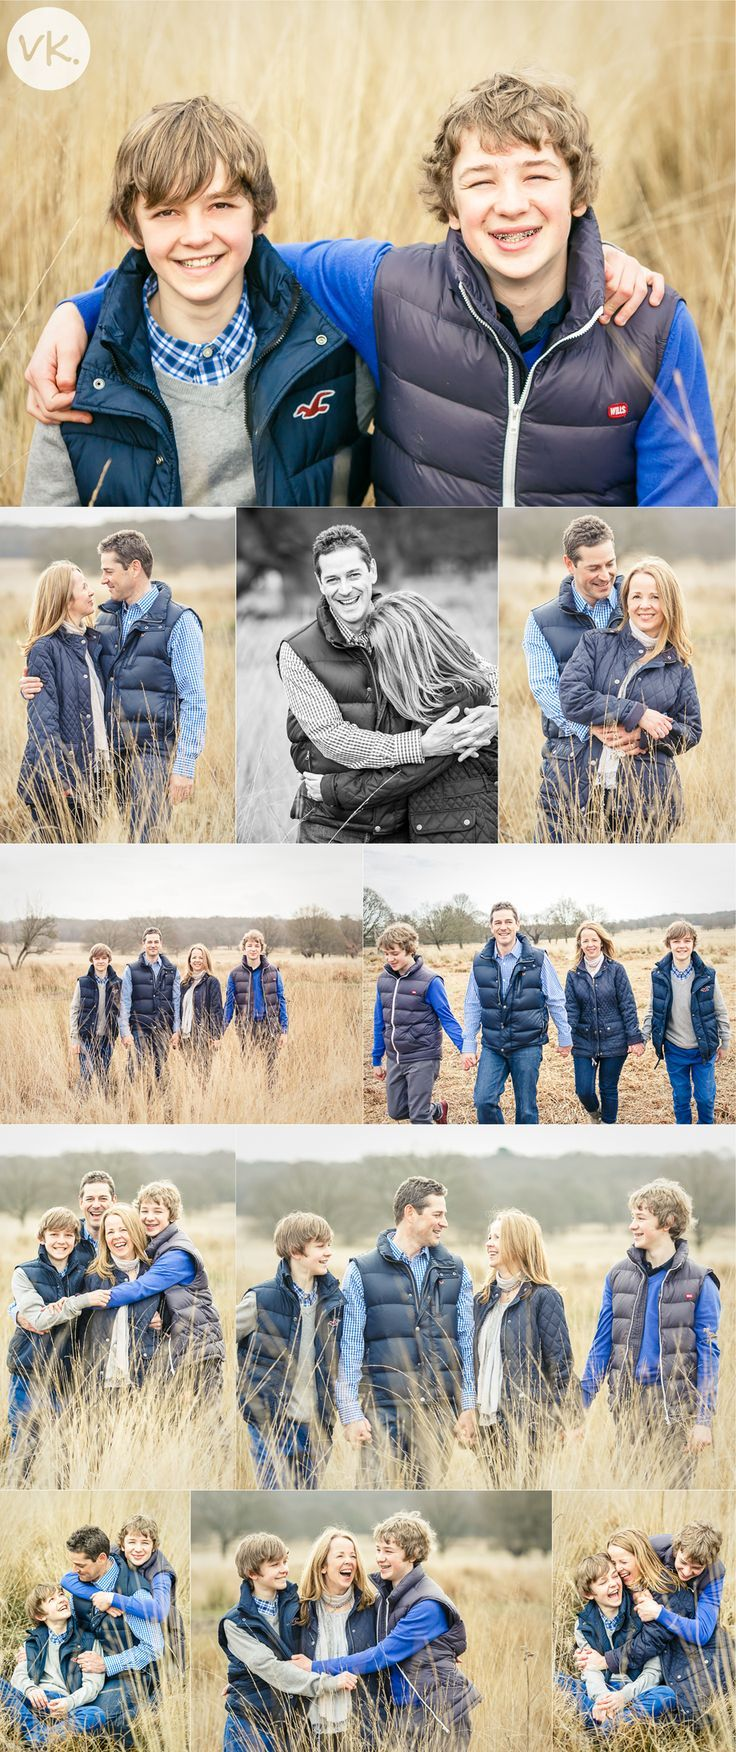 Most of the families I photograph have children under the age of 6. That's no surprise really, having family photos taken is normally on the to-do list when you